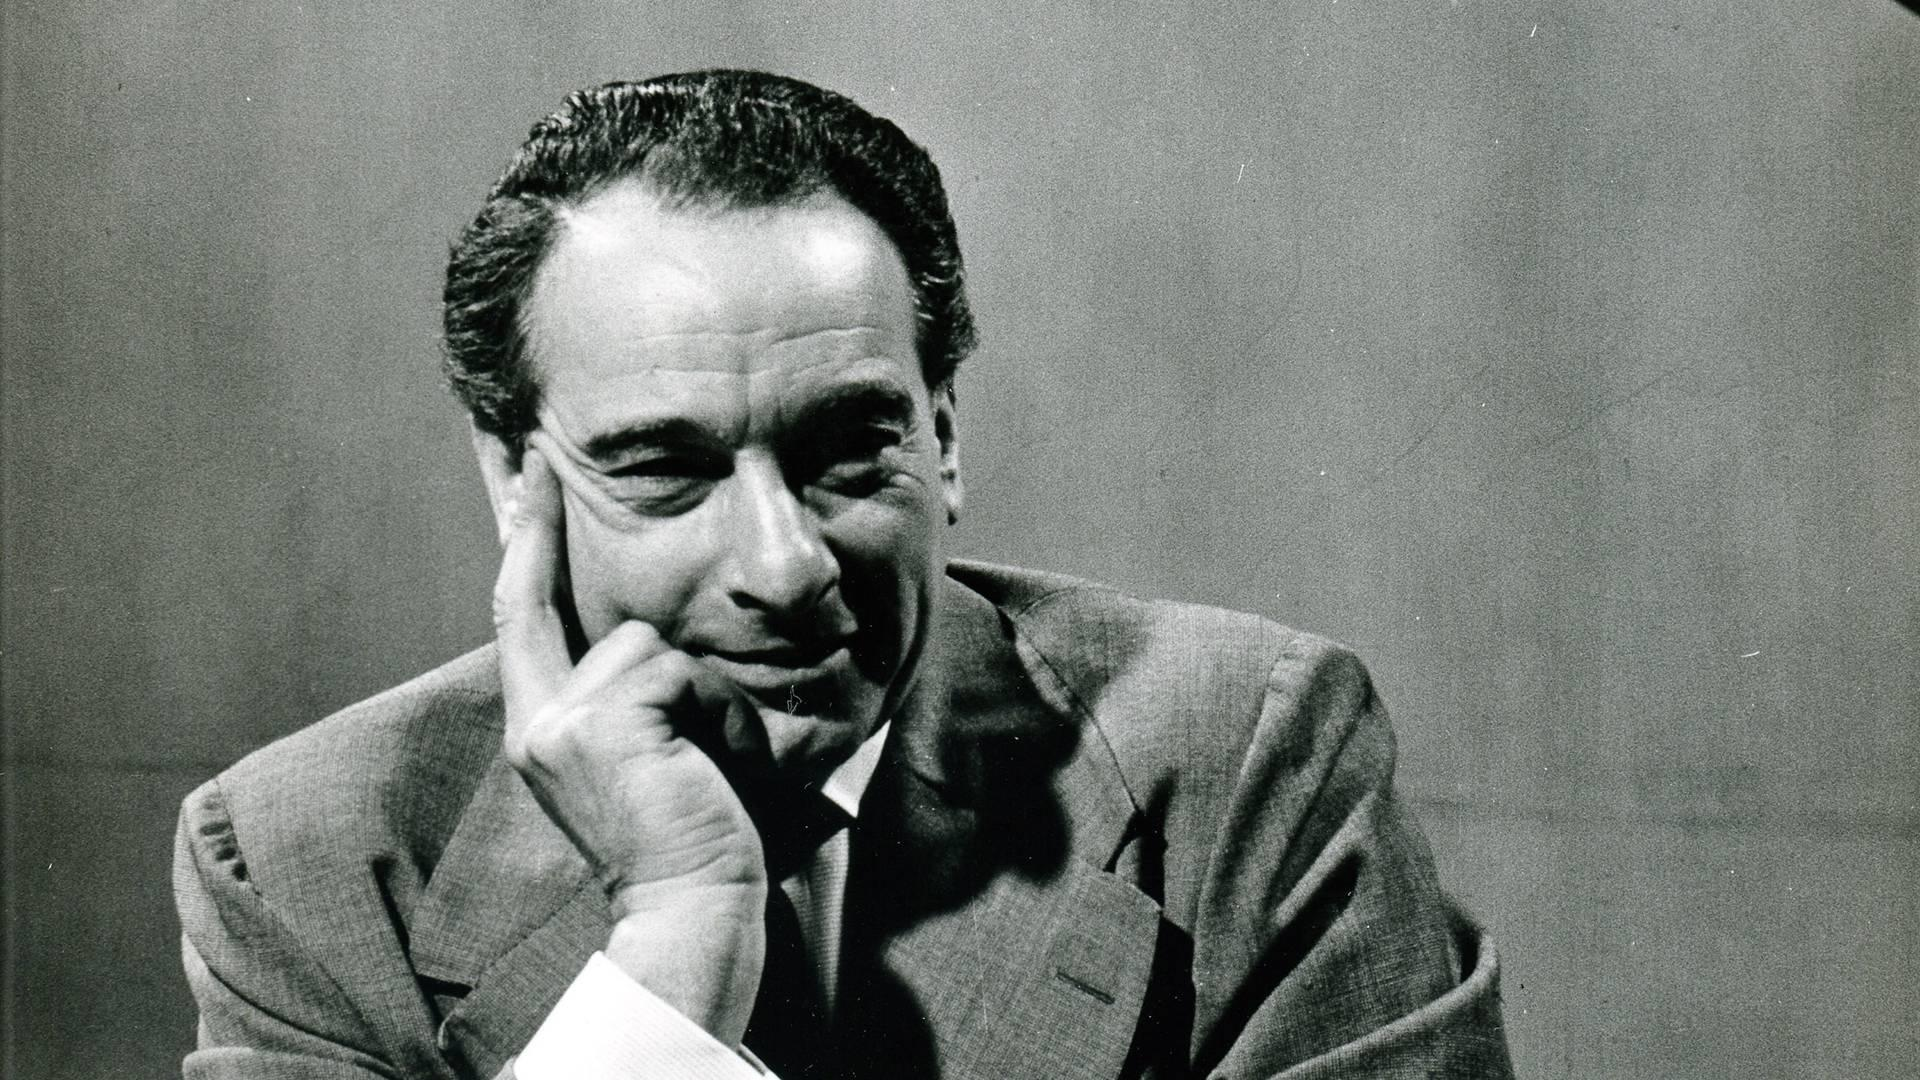 Victor Borge: 100 years of Music and Laughter